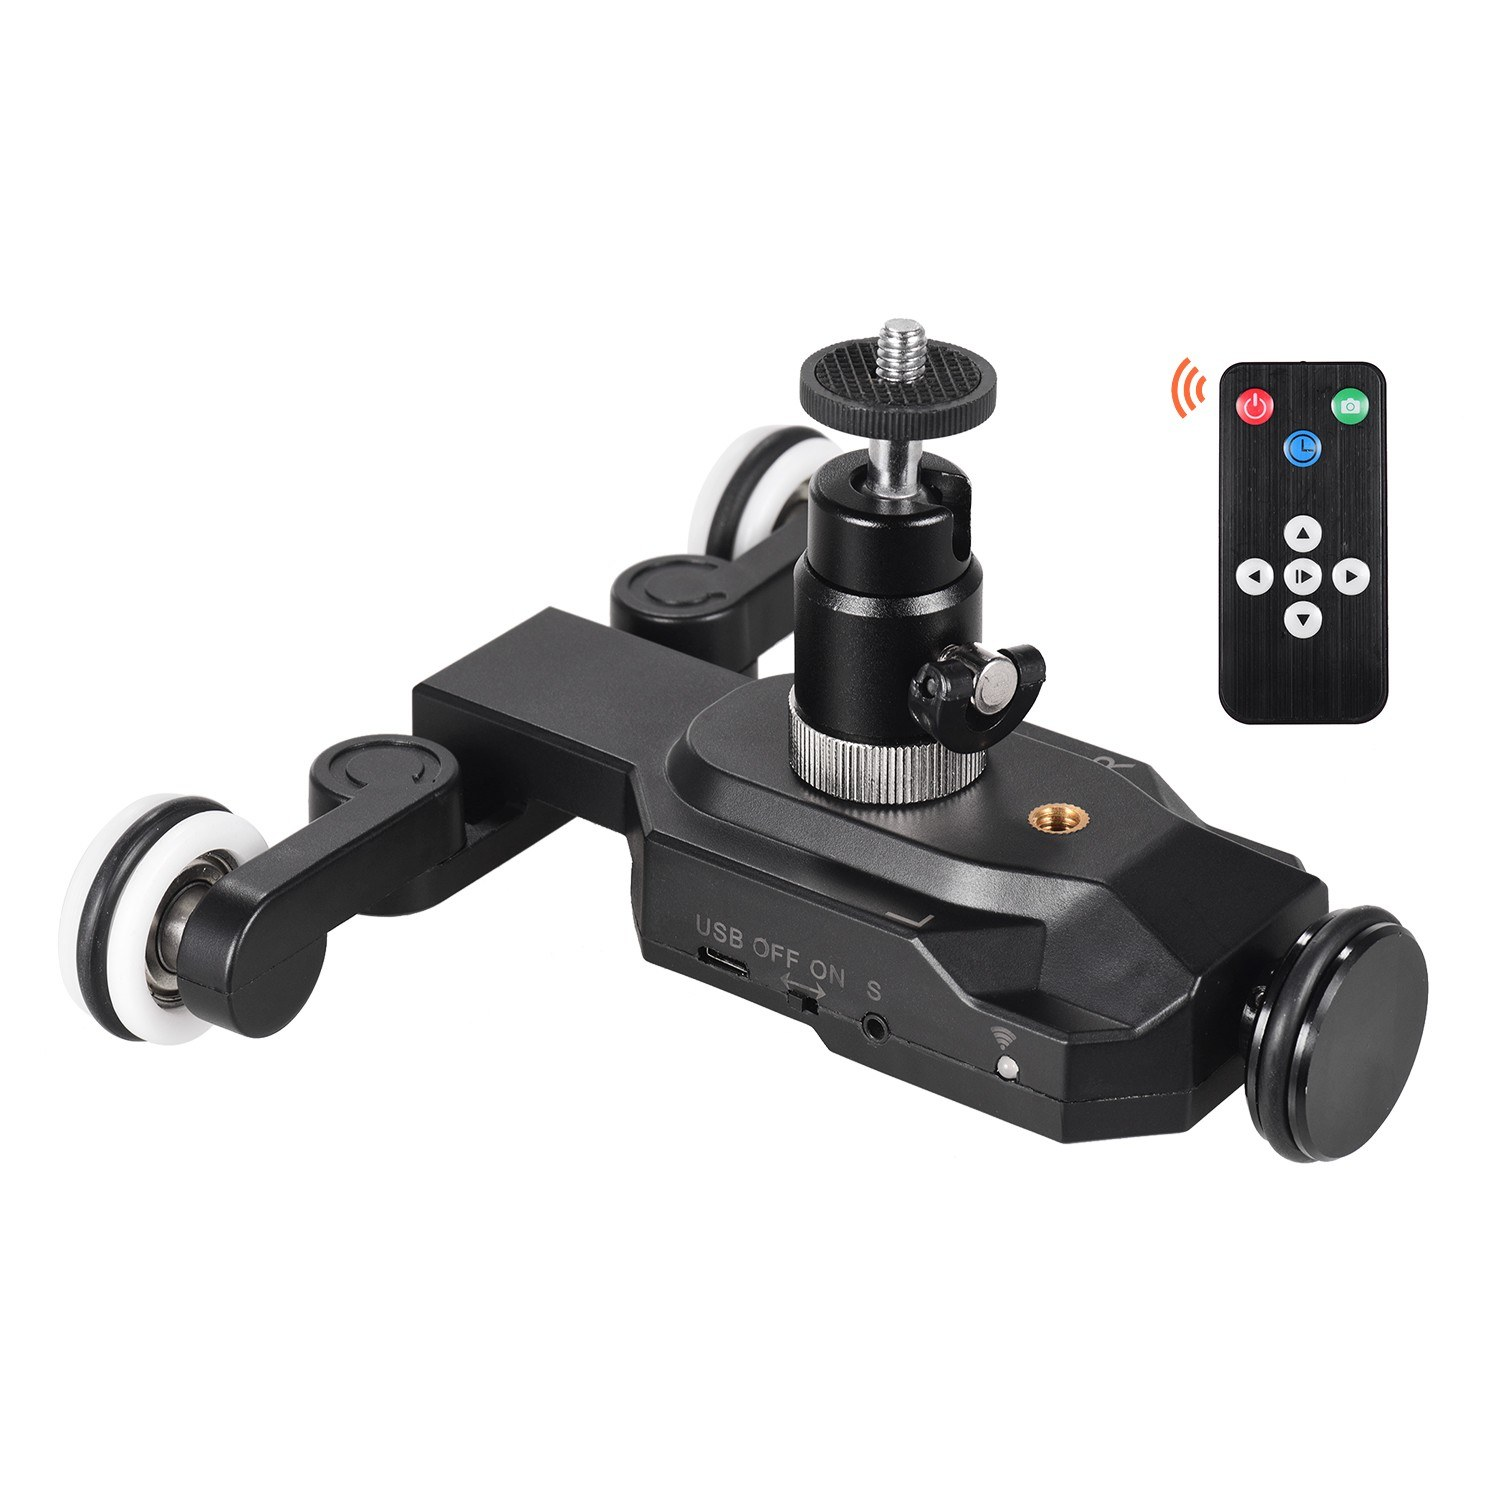 Portable Wireless Motorized Camera Video Dolly Camera Slider Dolly Rolling Slider Dolly Car 10 Speed Adjustable Chargeable Mini Slider with Remote Control Phone Holder Ball Head Compatible with Canon Nikon Sony DSLR Camera IOS Android Smartphone Max. Load